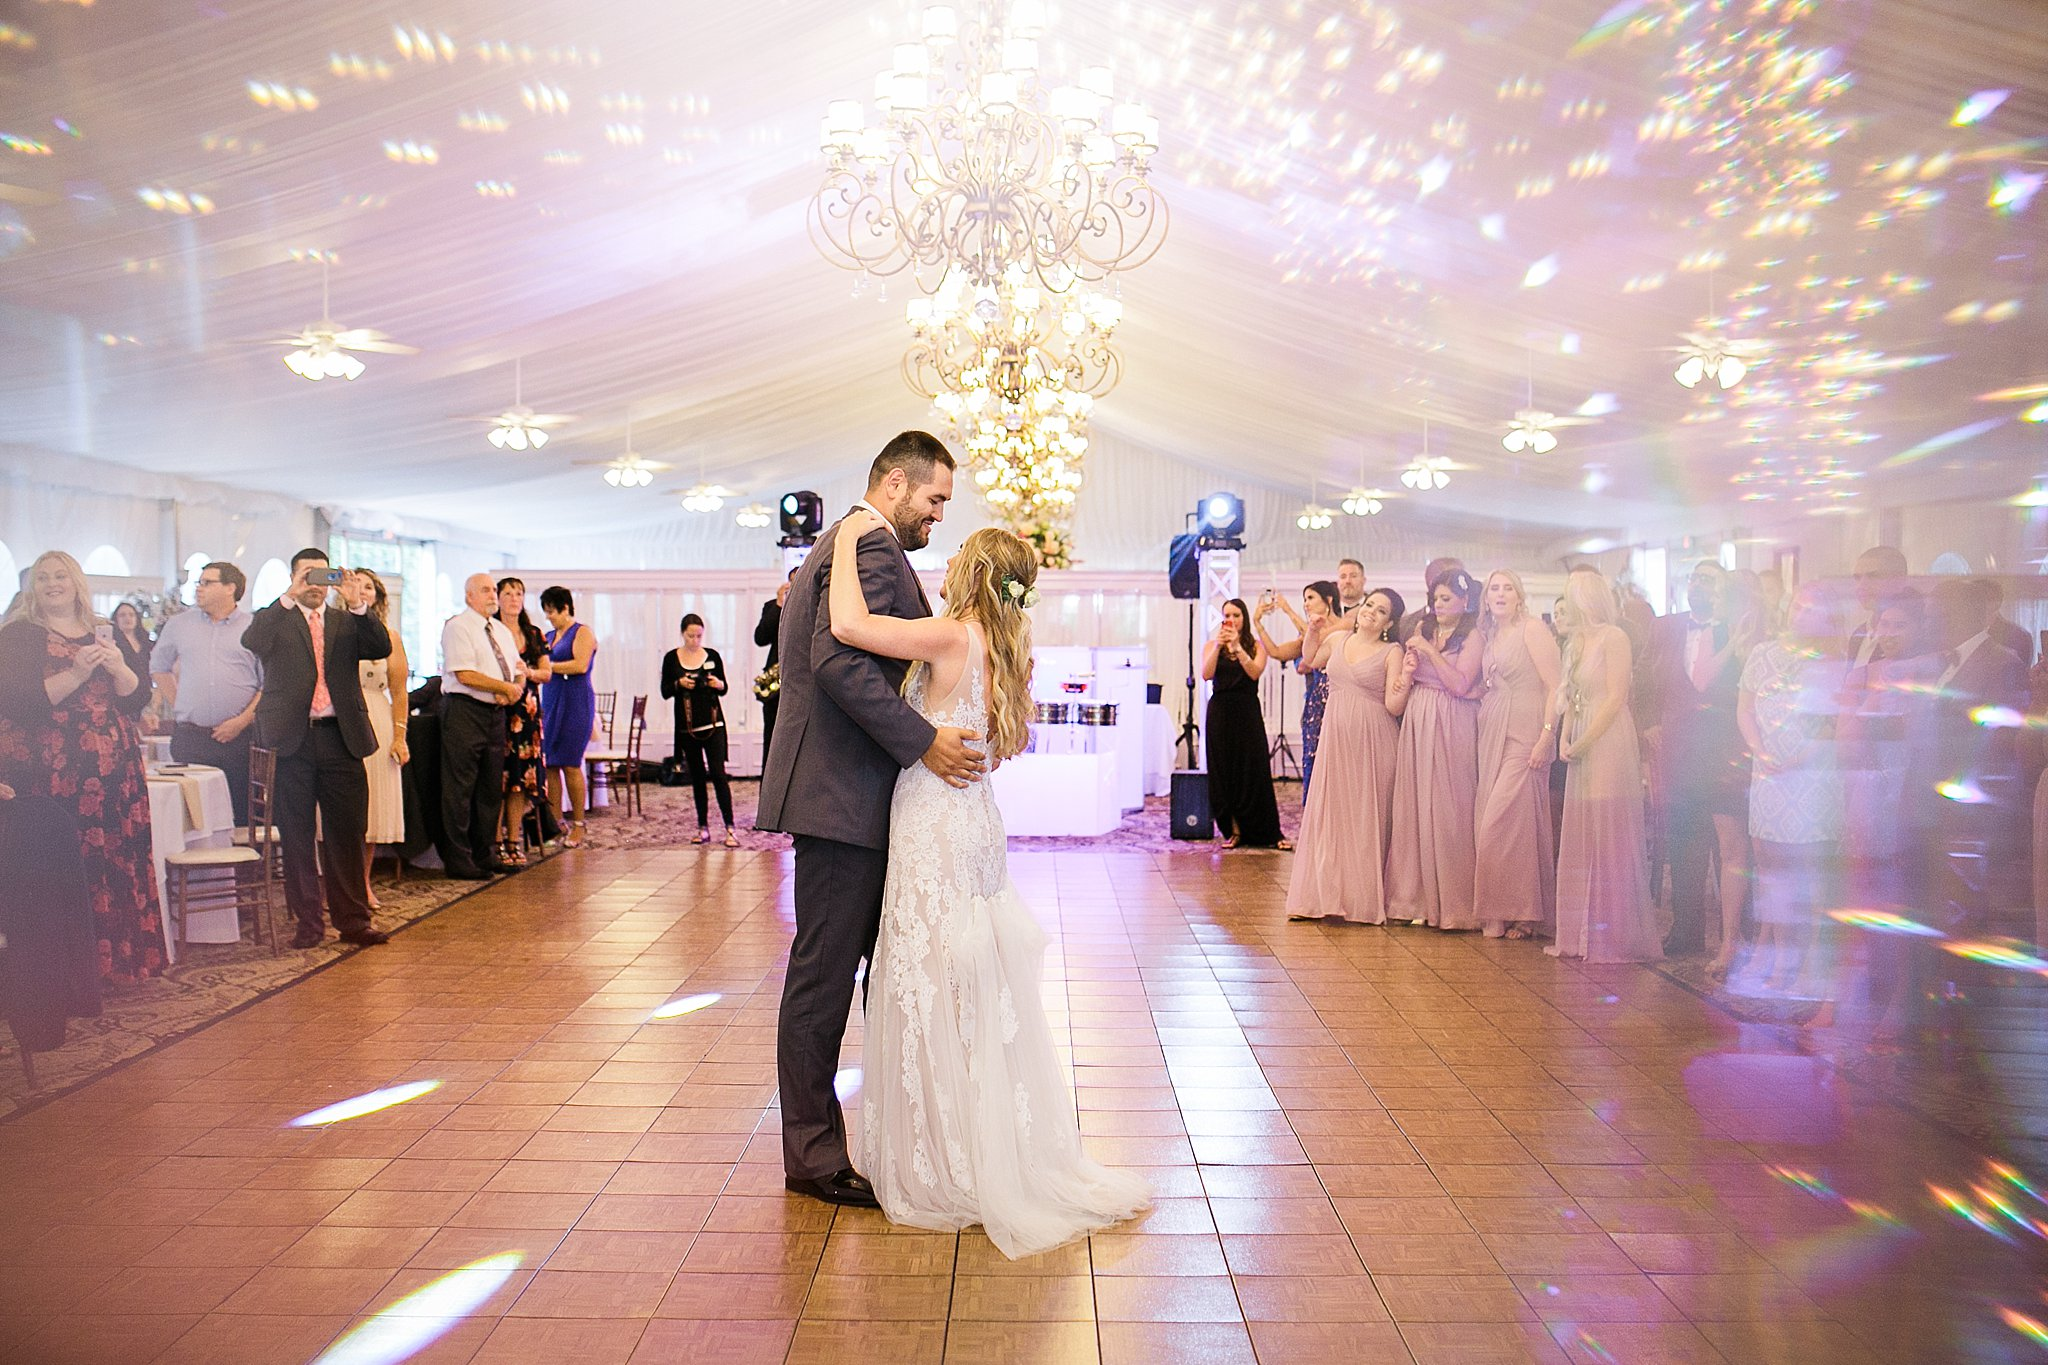 West Hills Country Club Wedding July Wedding Hudson Valley Wedding Hudson Valley Wedding Photographer Sweet Alice Photography80.jpg